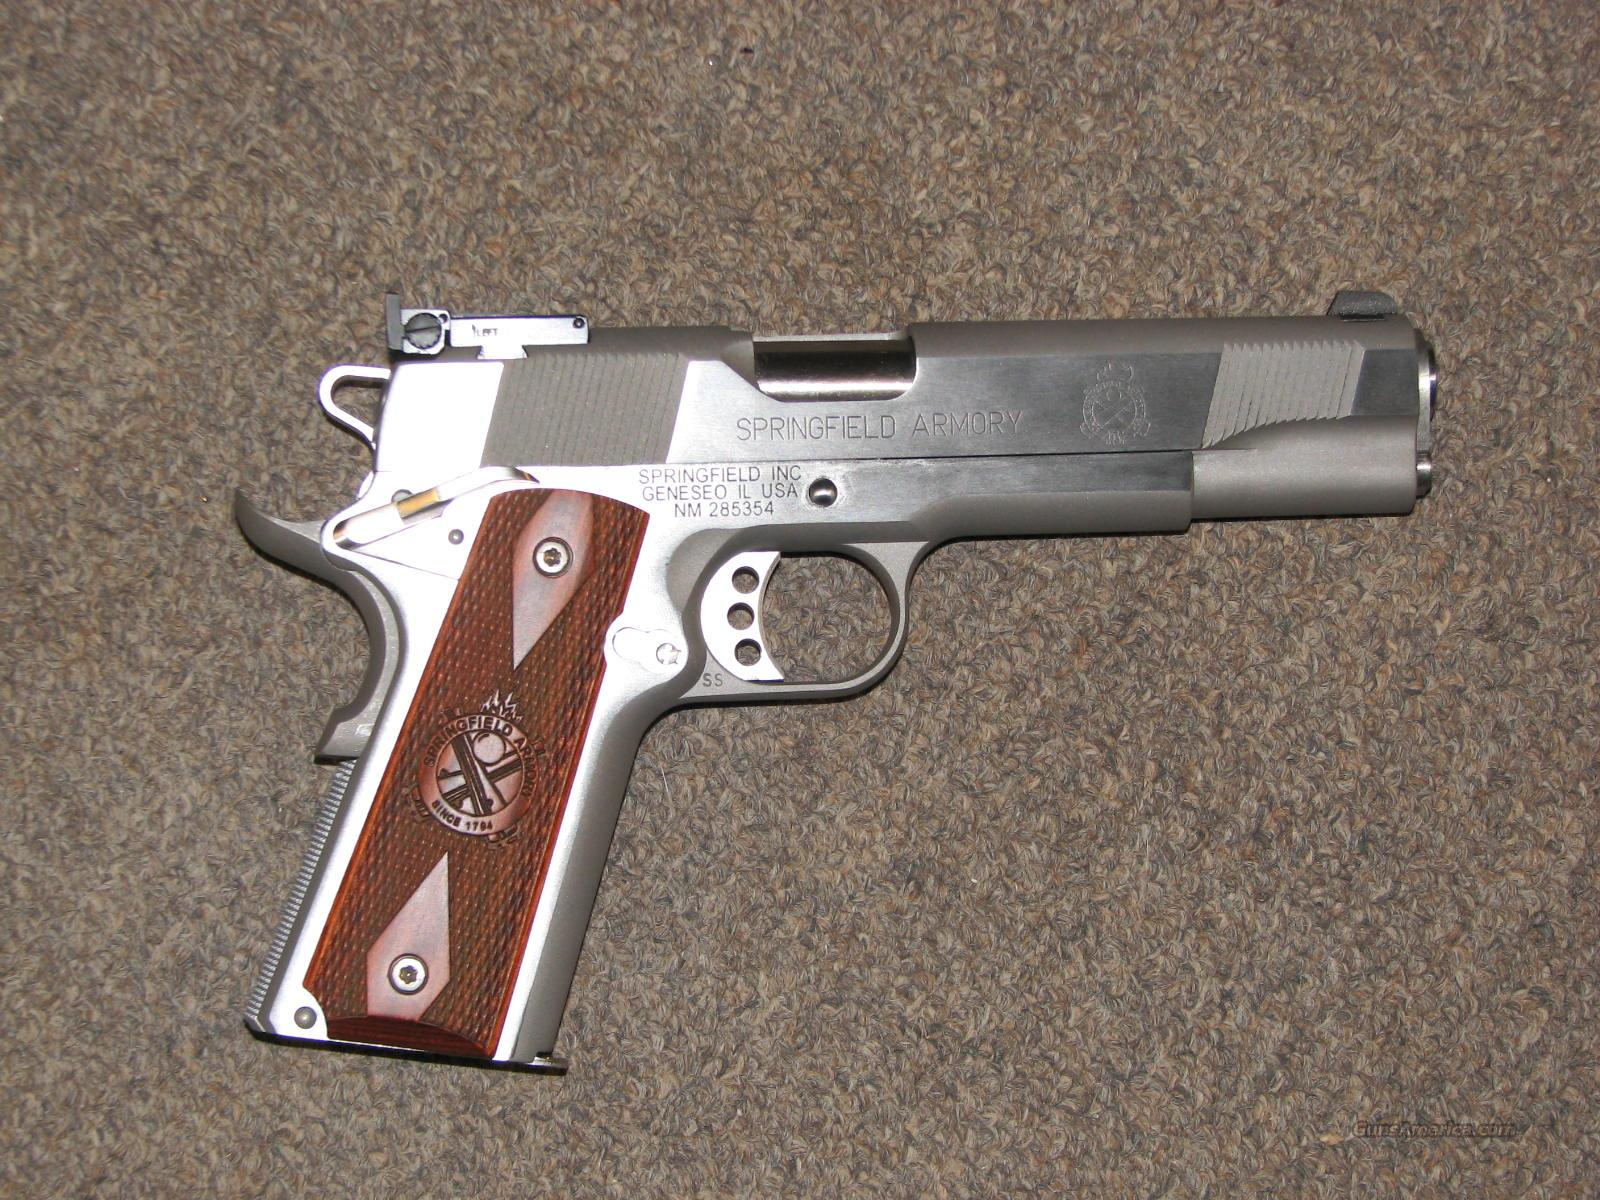 SPRINGFIELD 1911 A1 STAINLESS TARGET .45 ACP - NEW!  Guns > Pistols > Springfield Armory Pistols > 1911 Type